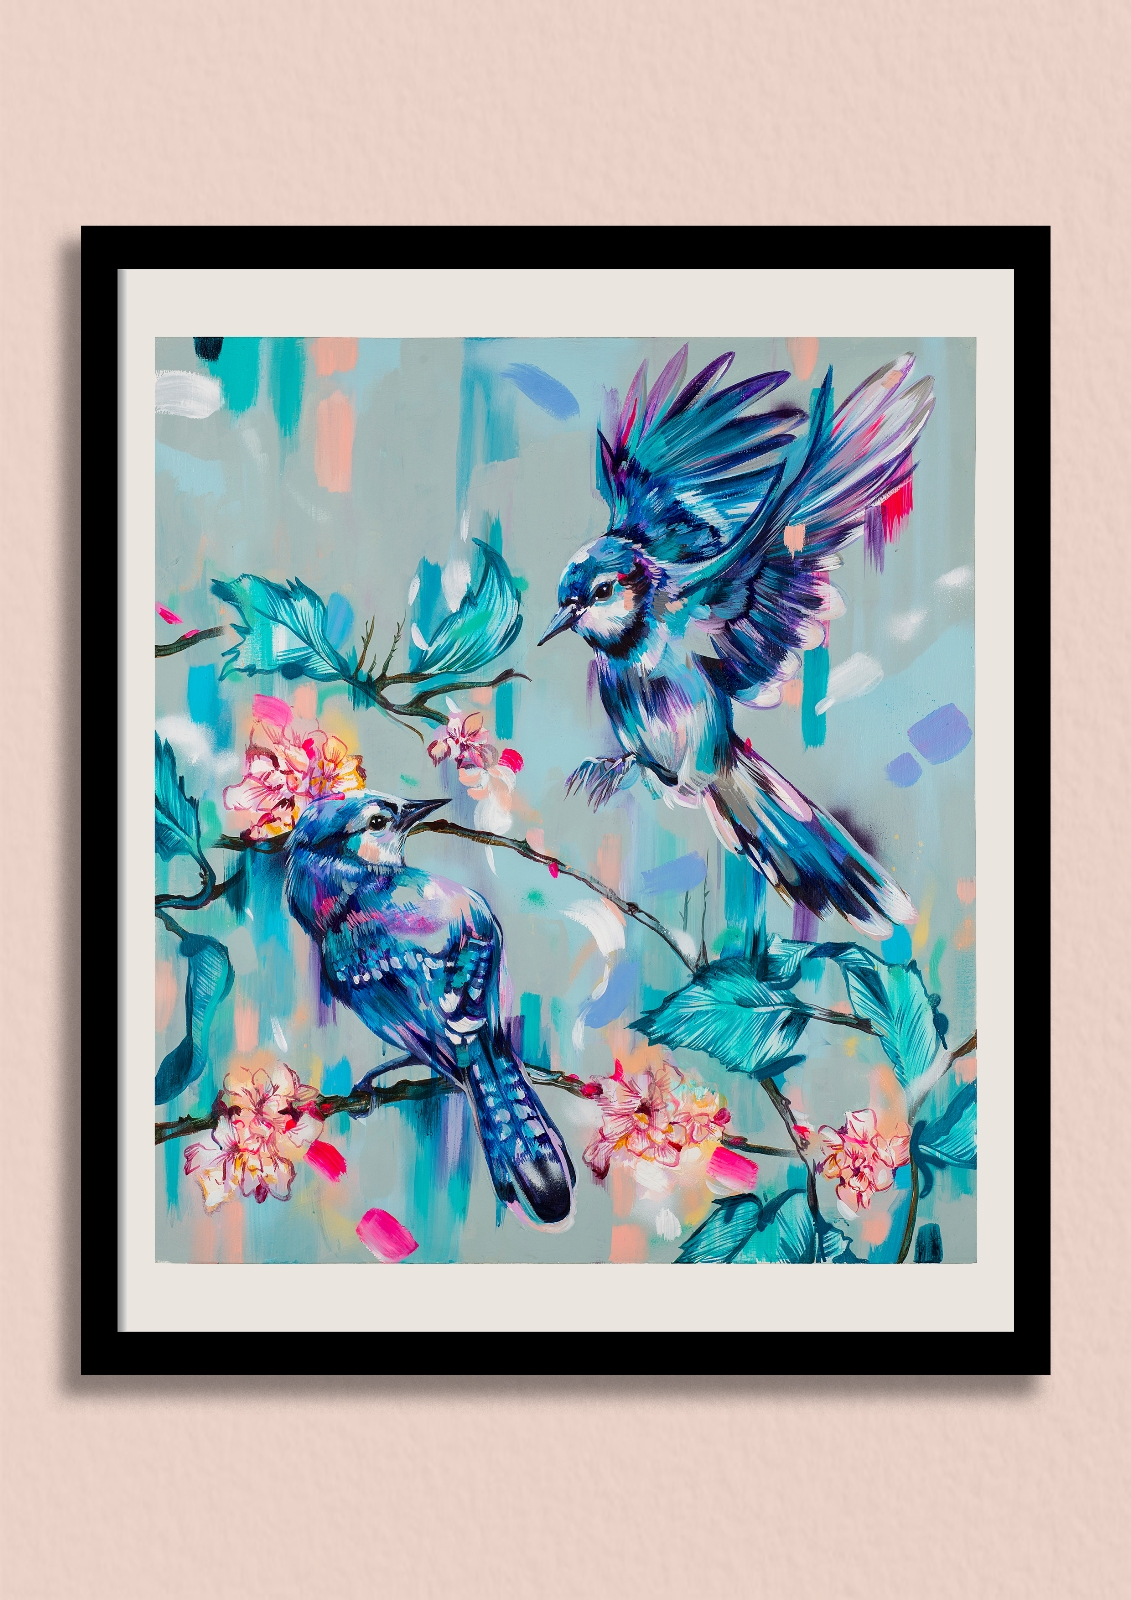 EACH NEW DAY - This blue jay artwork captures the freshness of a dew sprinkled morning.Unframed giclée print £150Framed giclée print £220